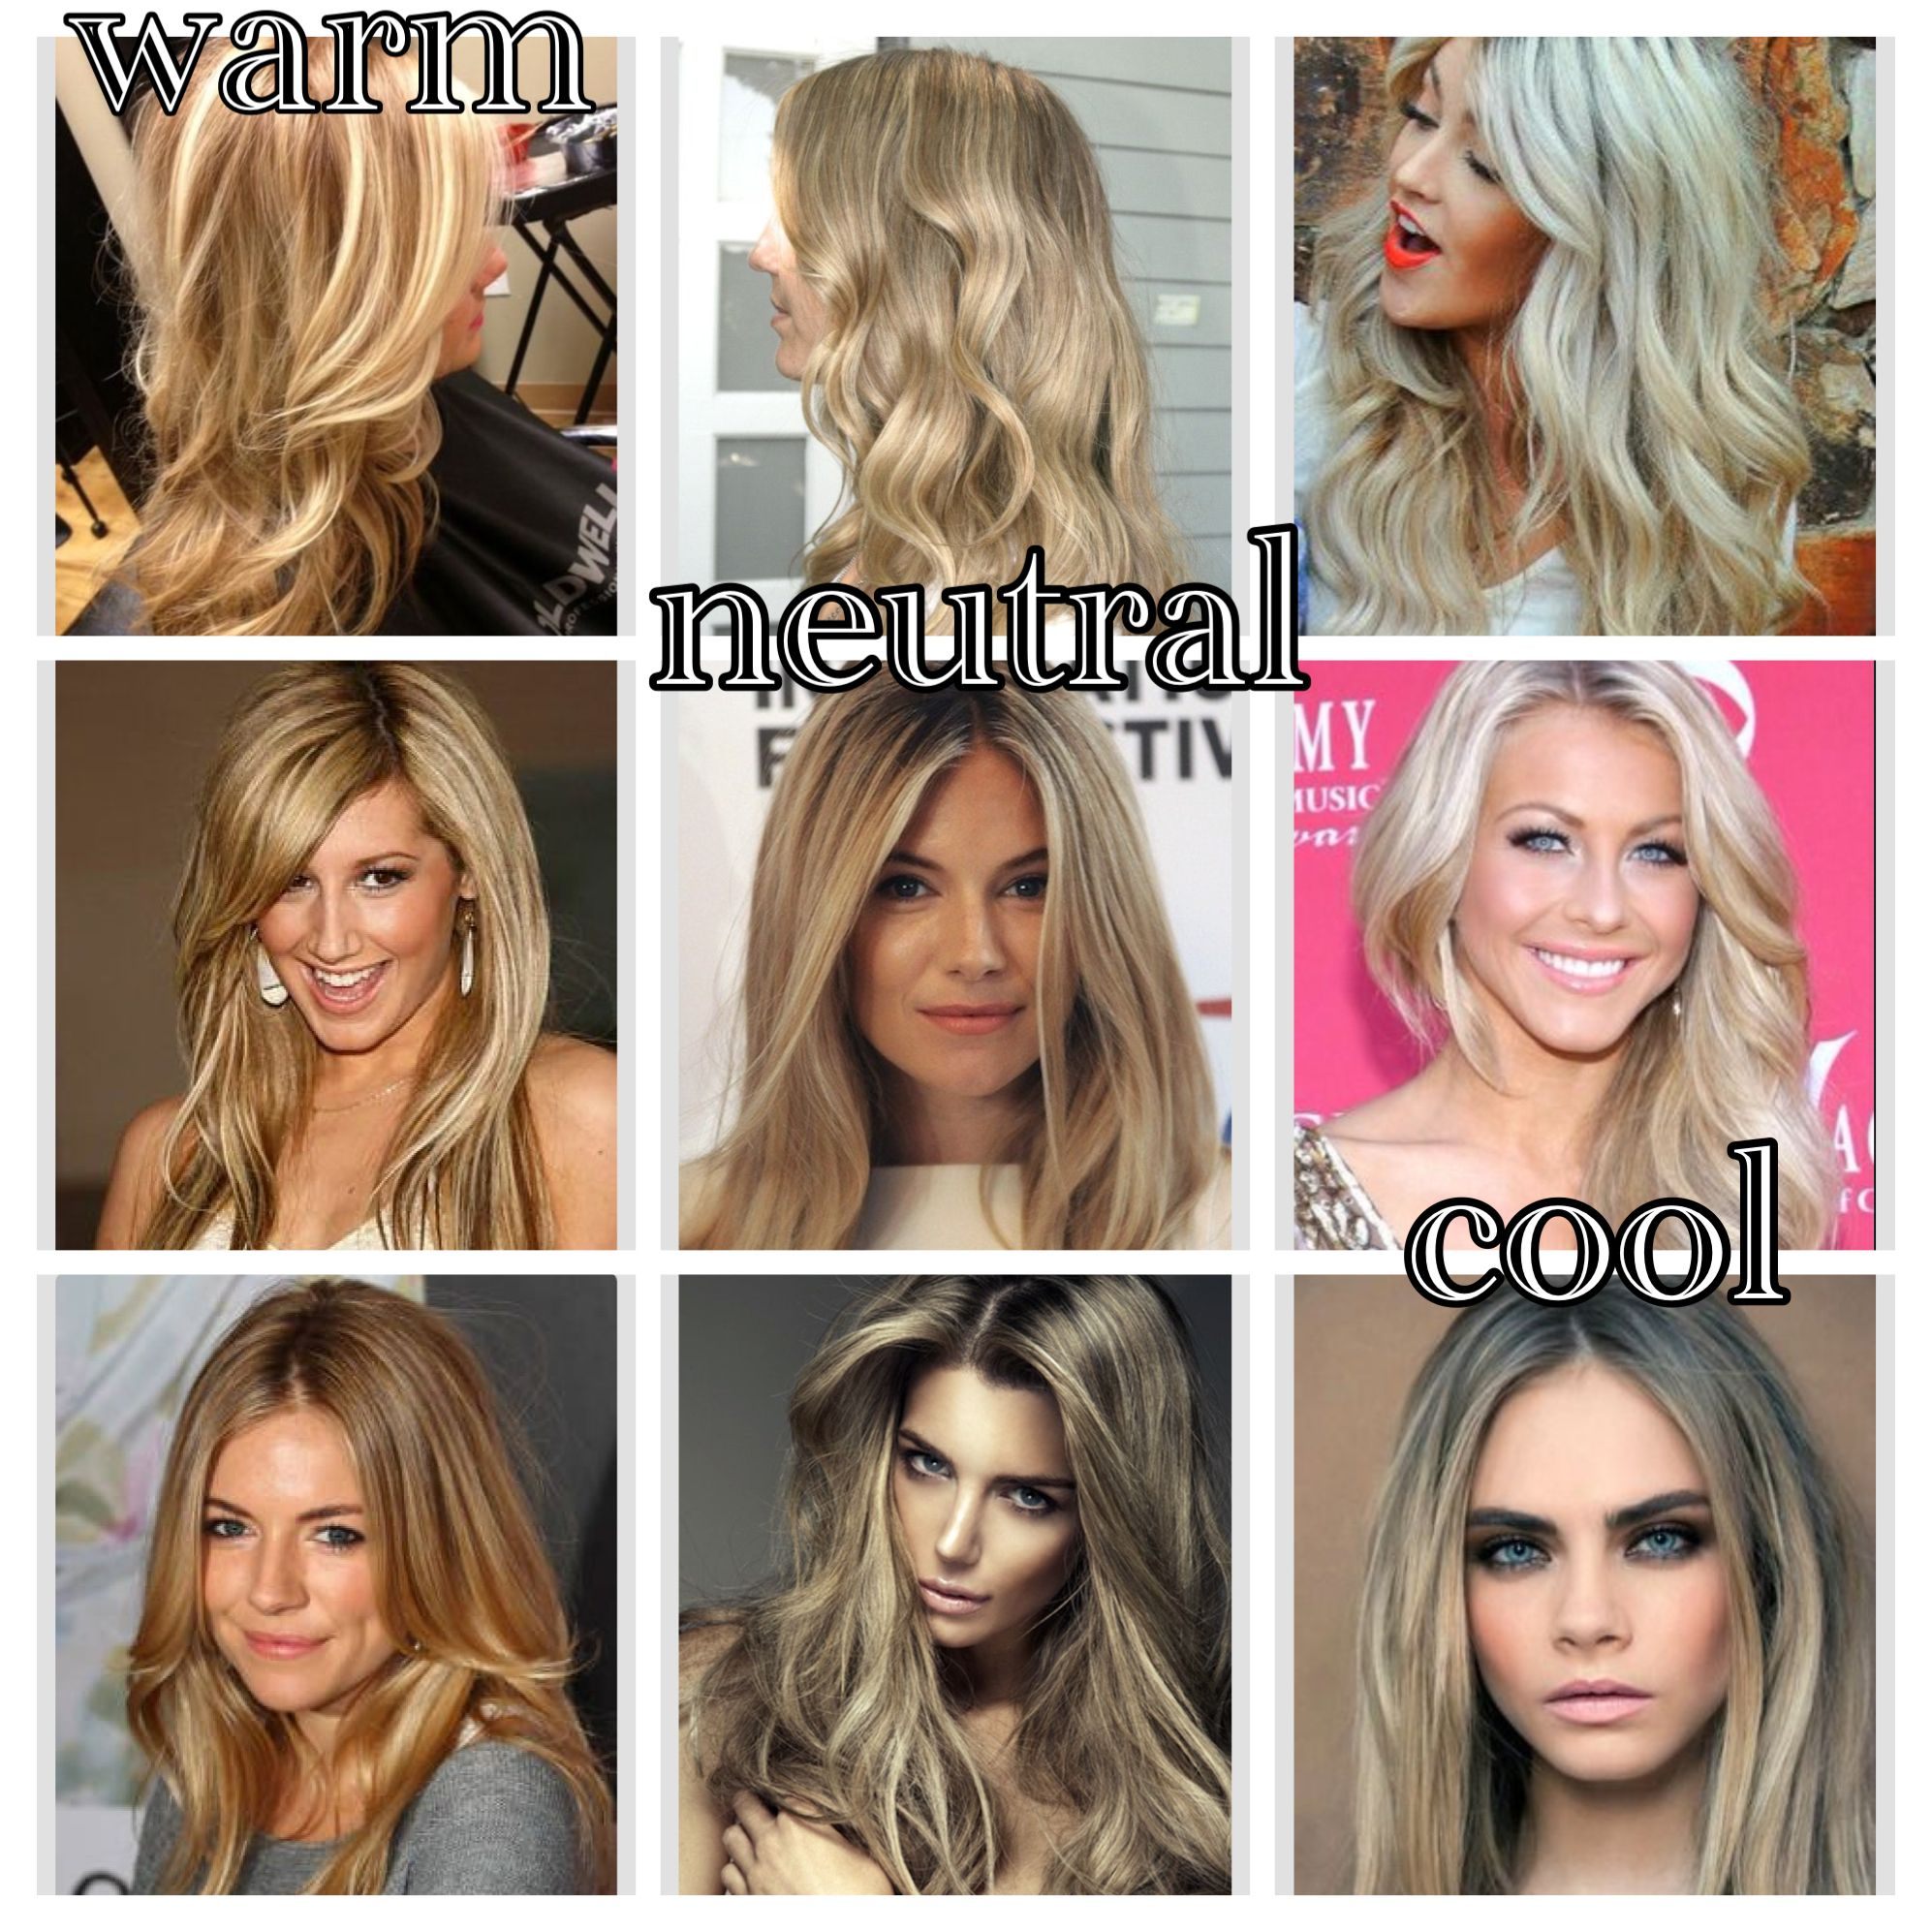 the difference between warm neutral and cool blonde tones bukes wallpaper ash hair dye for color shades smartphone hd pics